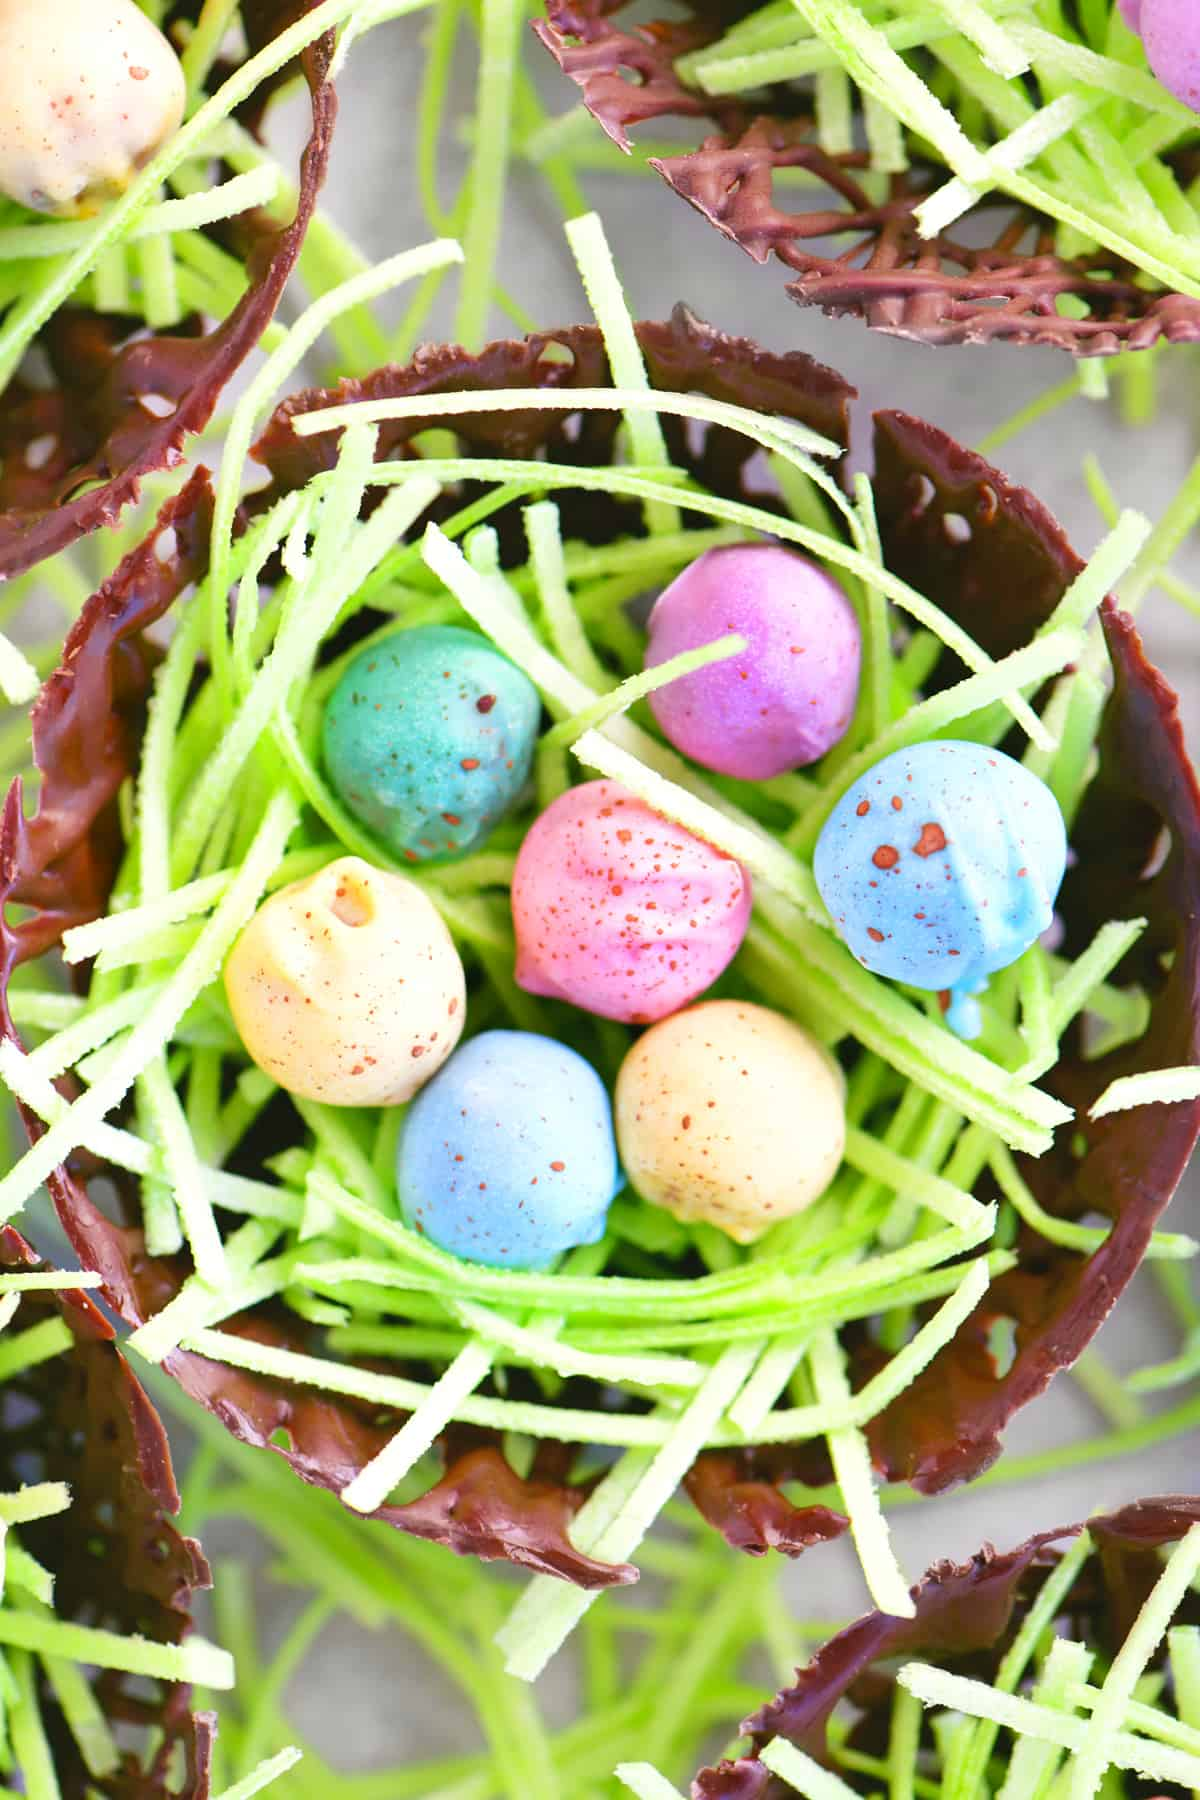 a chocolate nest with grass and eggs inside